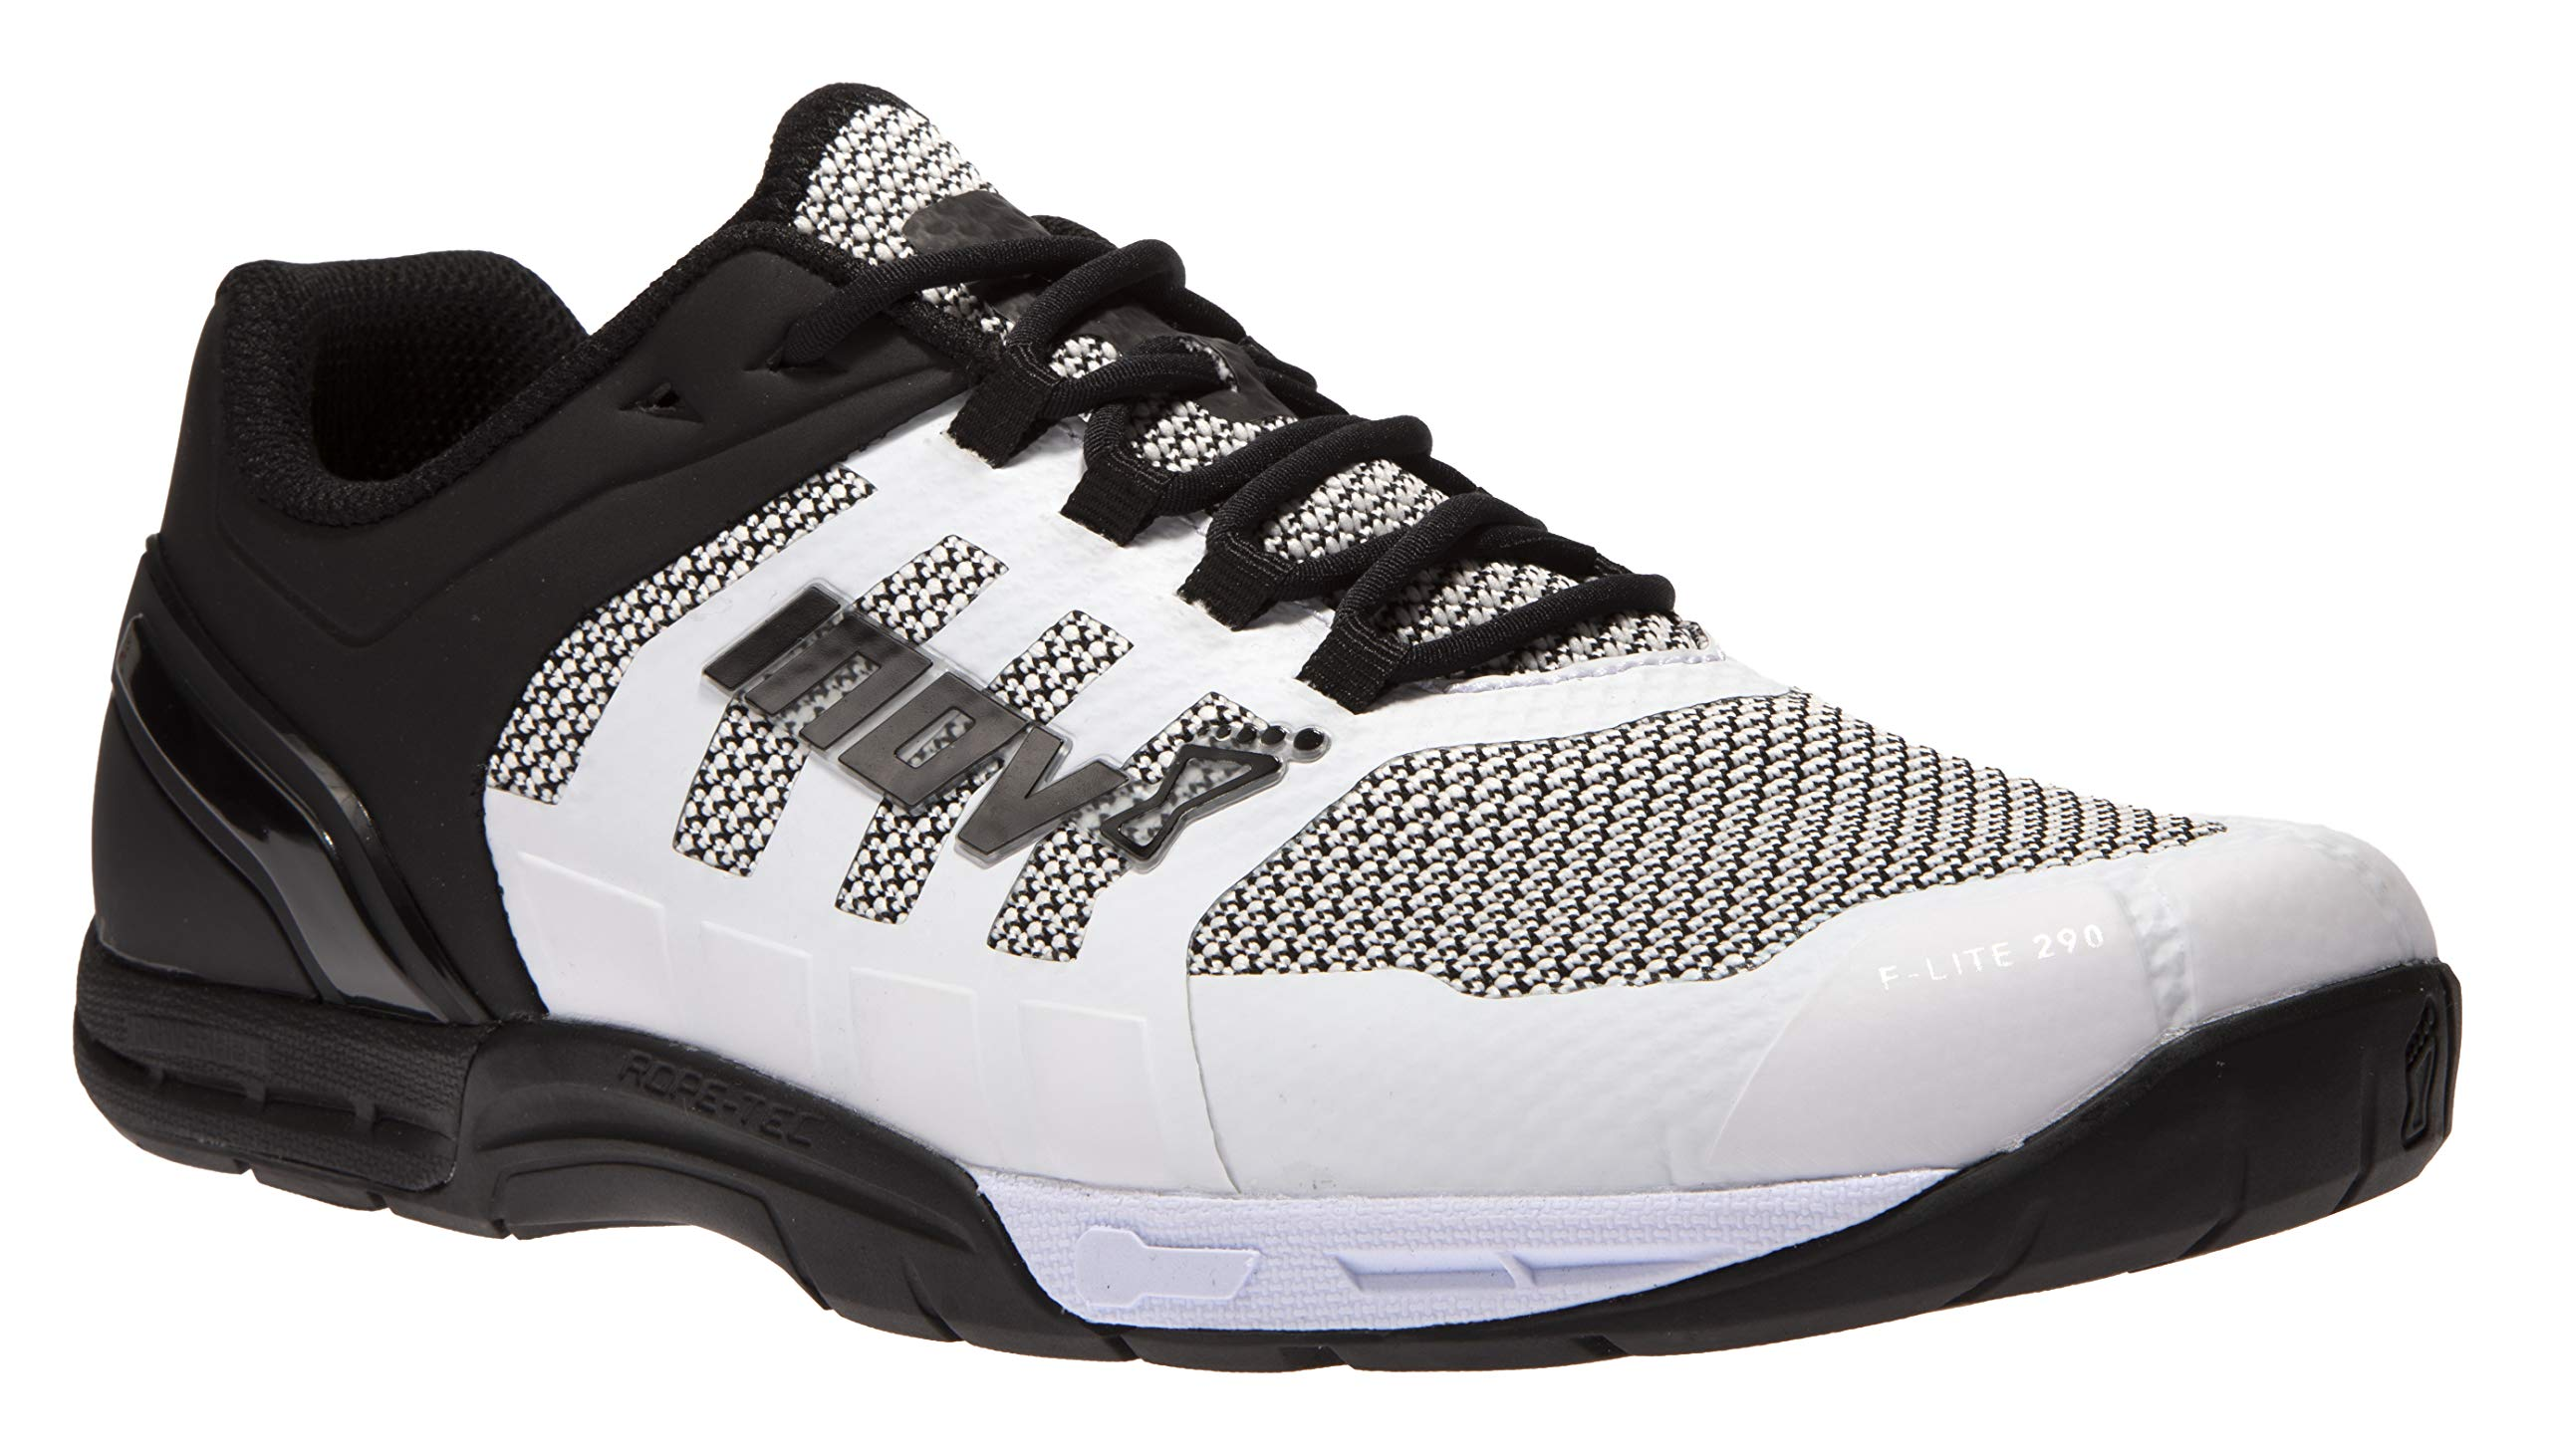 Inov-8 Mens F-Lite 290 Knit - Ultimate Power Training Shoes - Super Breathable Knitted Upper - White/Black 8.5 M US by Inov-8